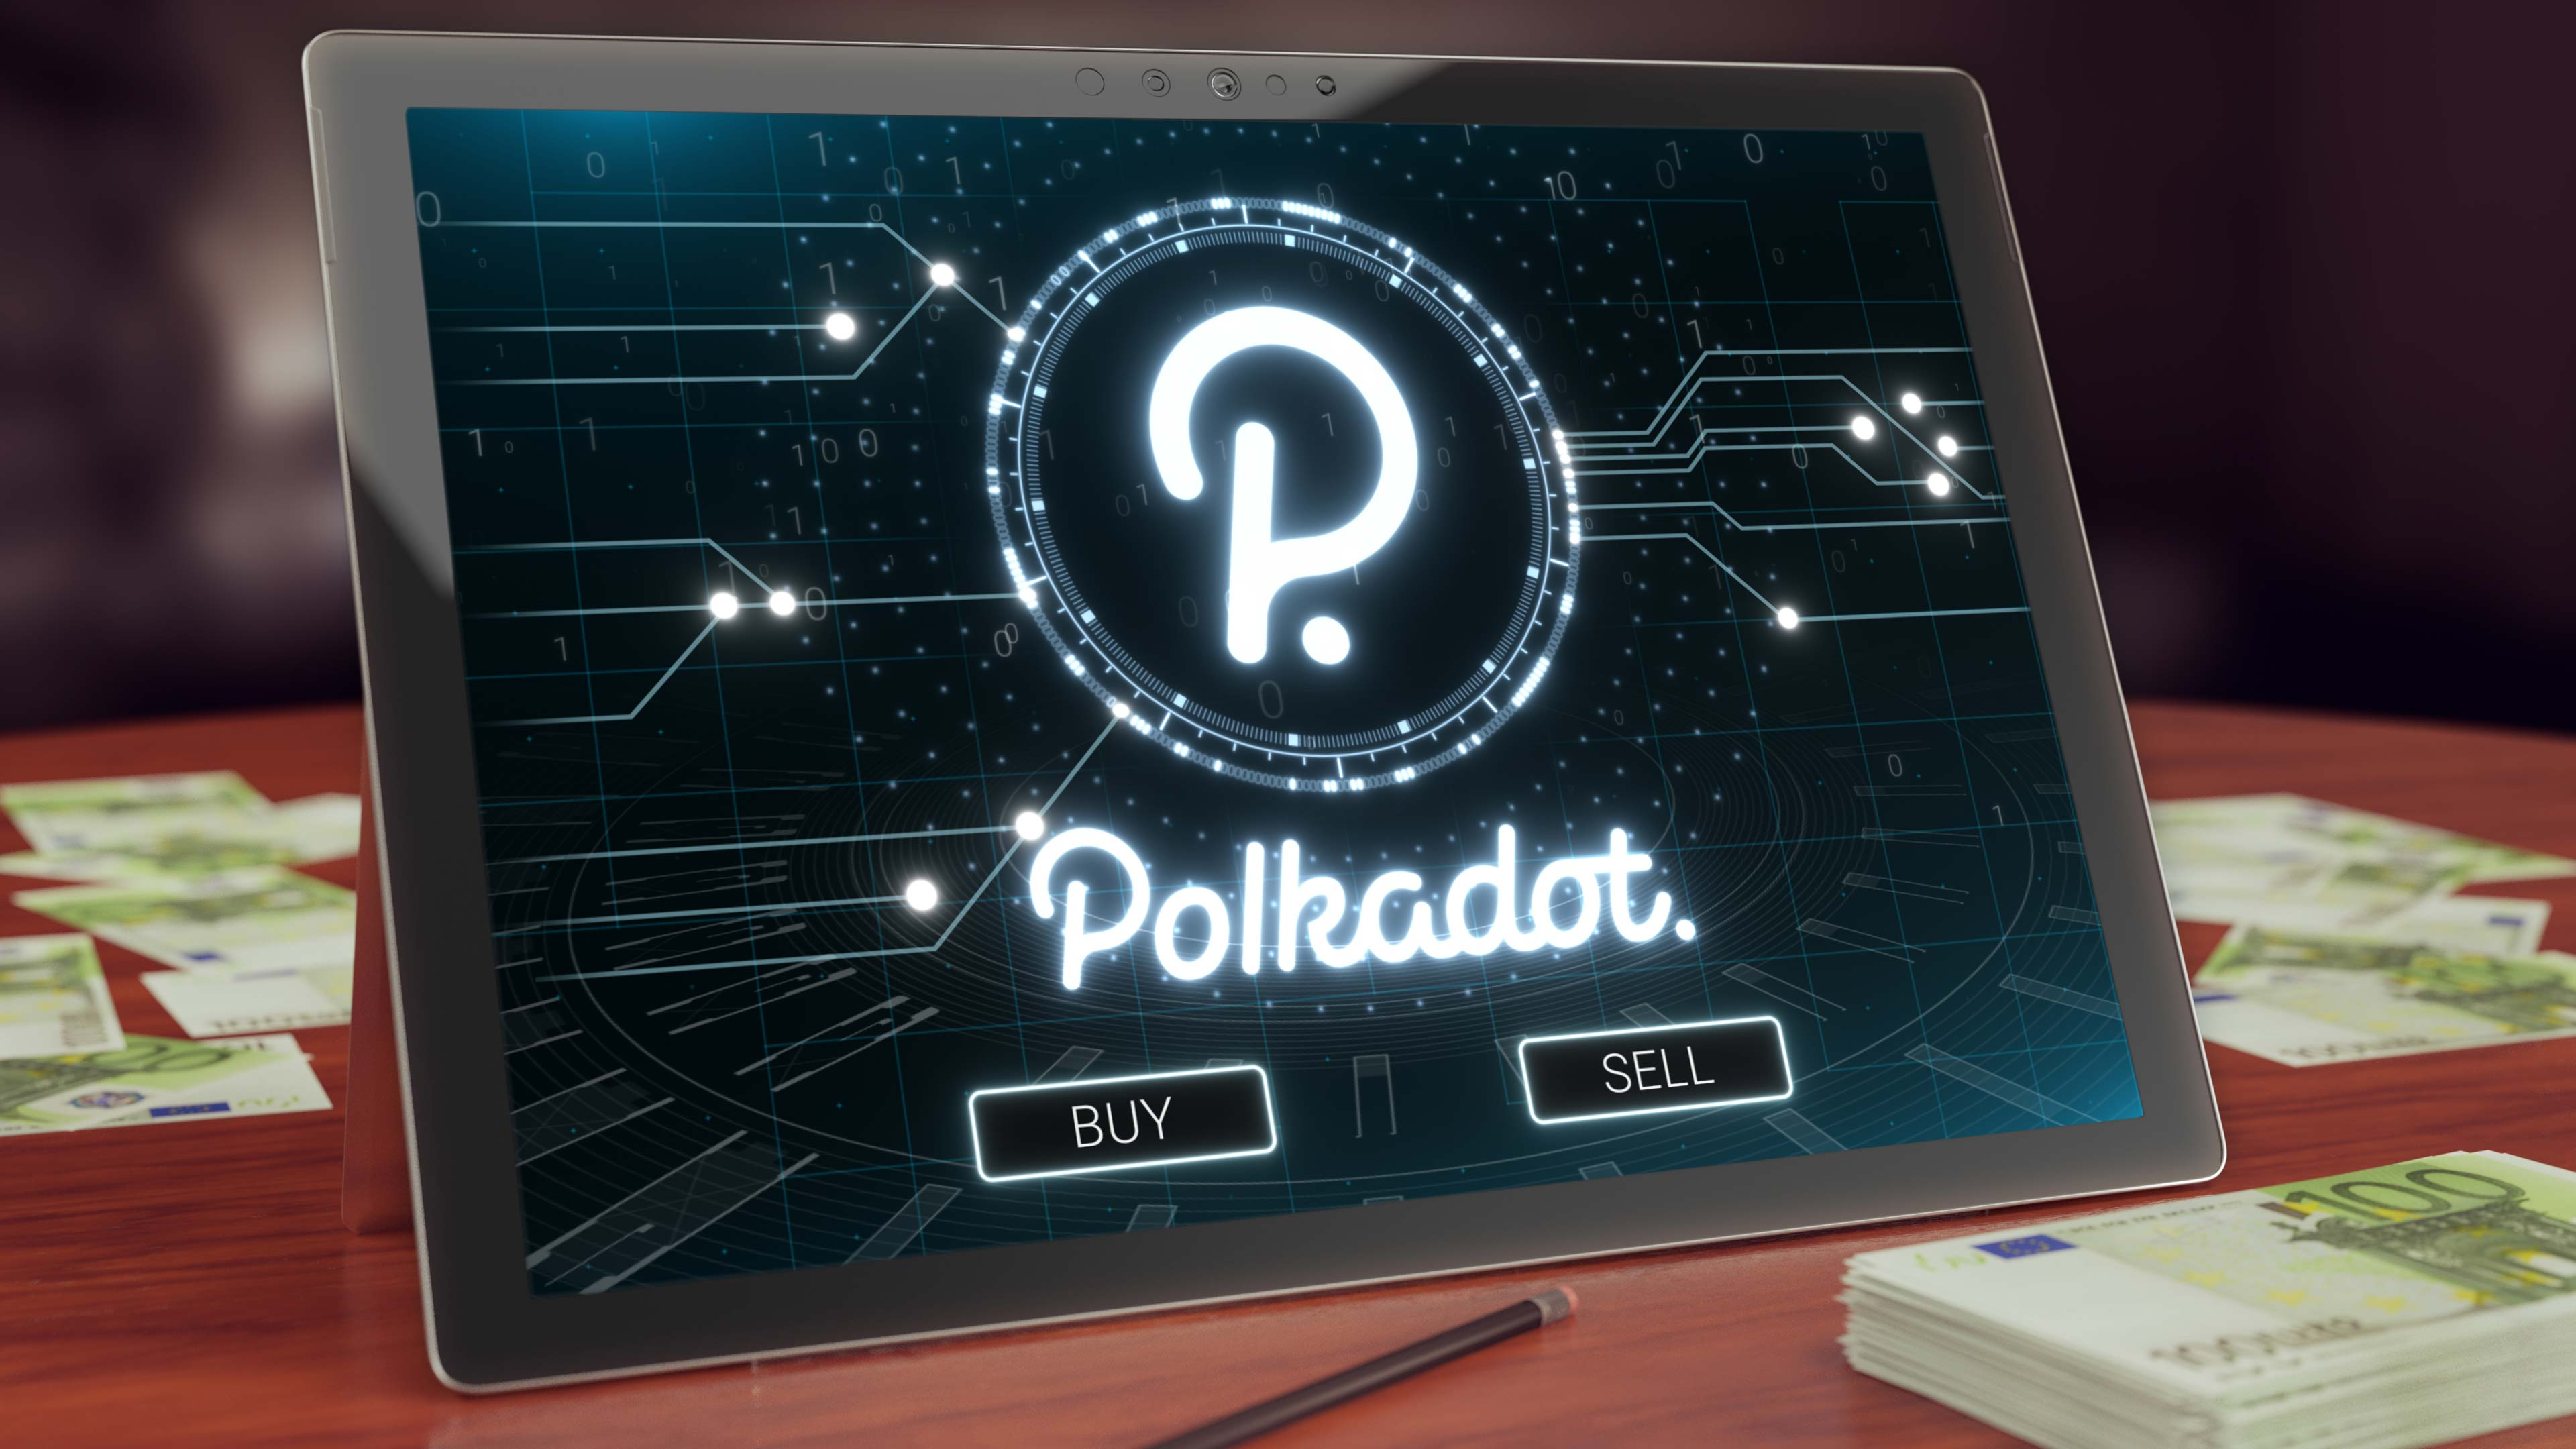 Best cryptocurrency listed — Polkadot